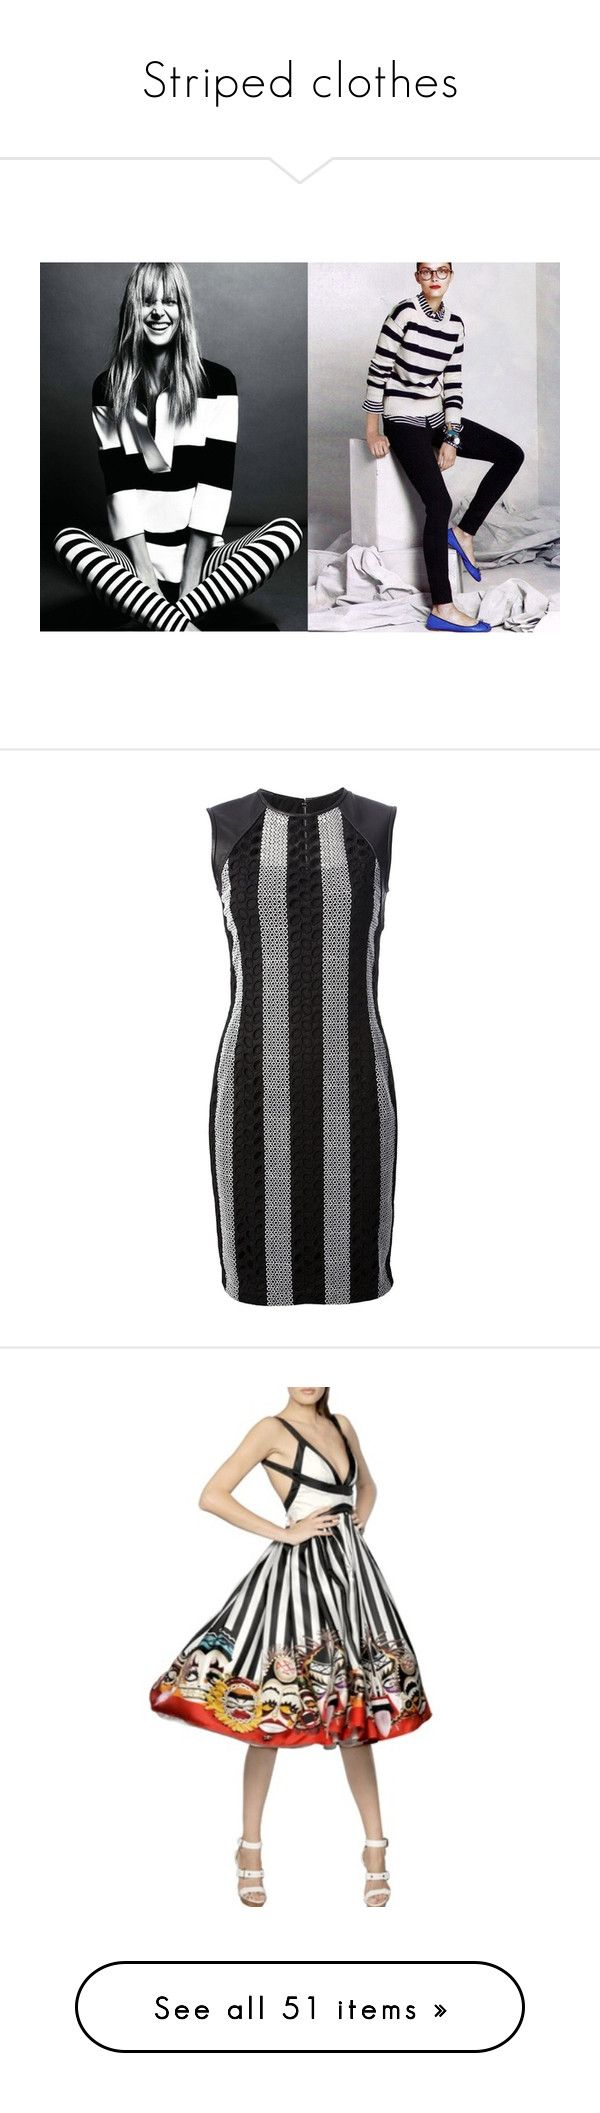 """""""Striped clothes"""" by mssantos ❤ liked on Polyvore featuring shorts, women, black cuffed shorts, stripe shorts, black shorts, striped shorts, polka dot shorts, tops, blouses and multi color"""